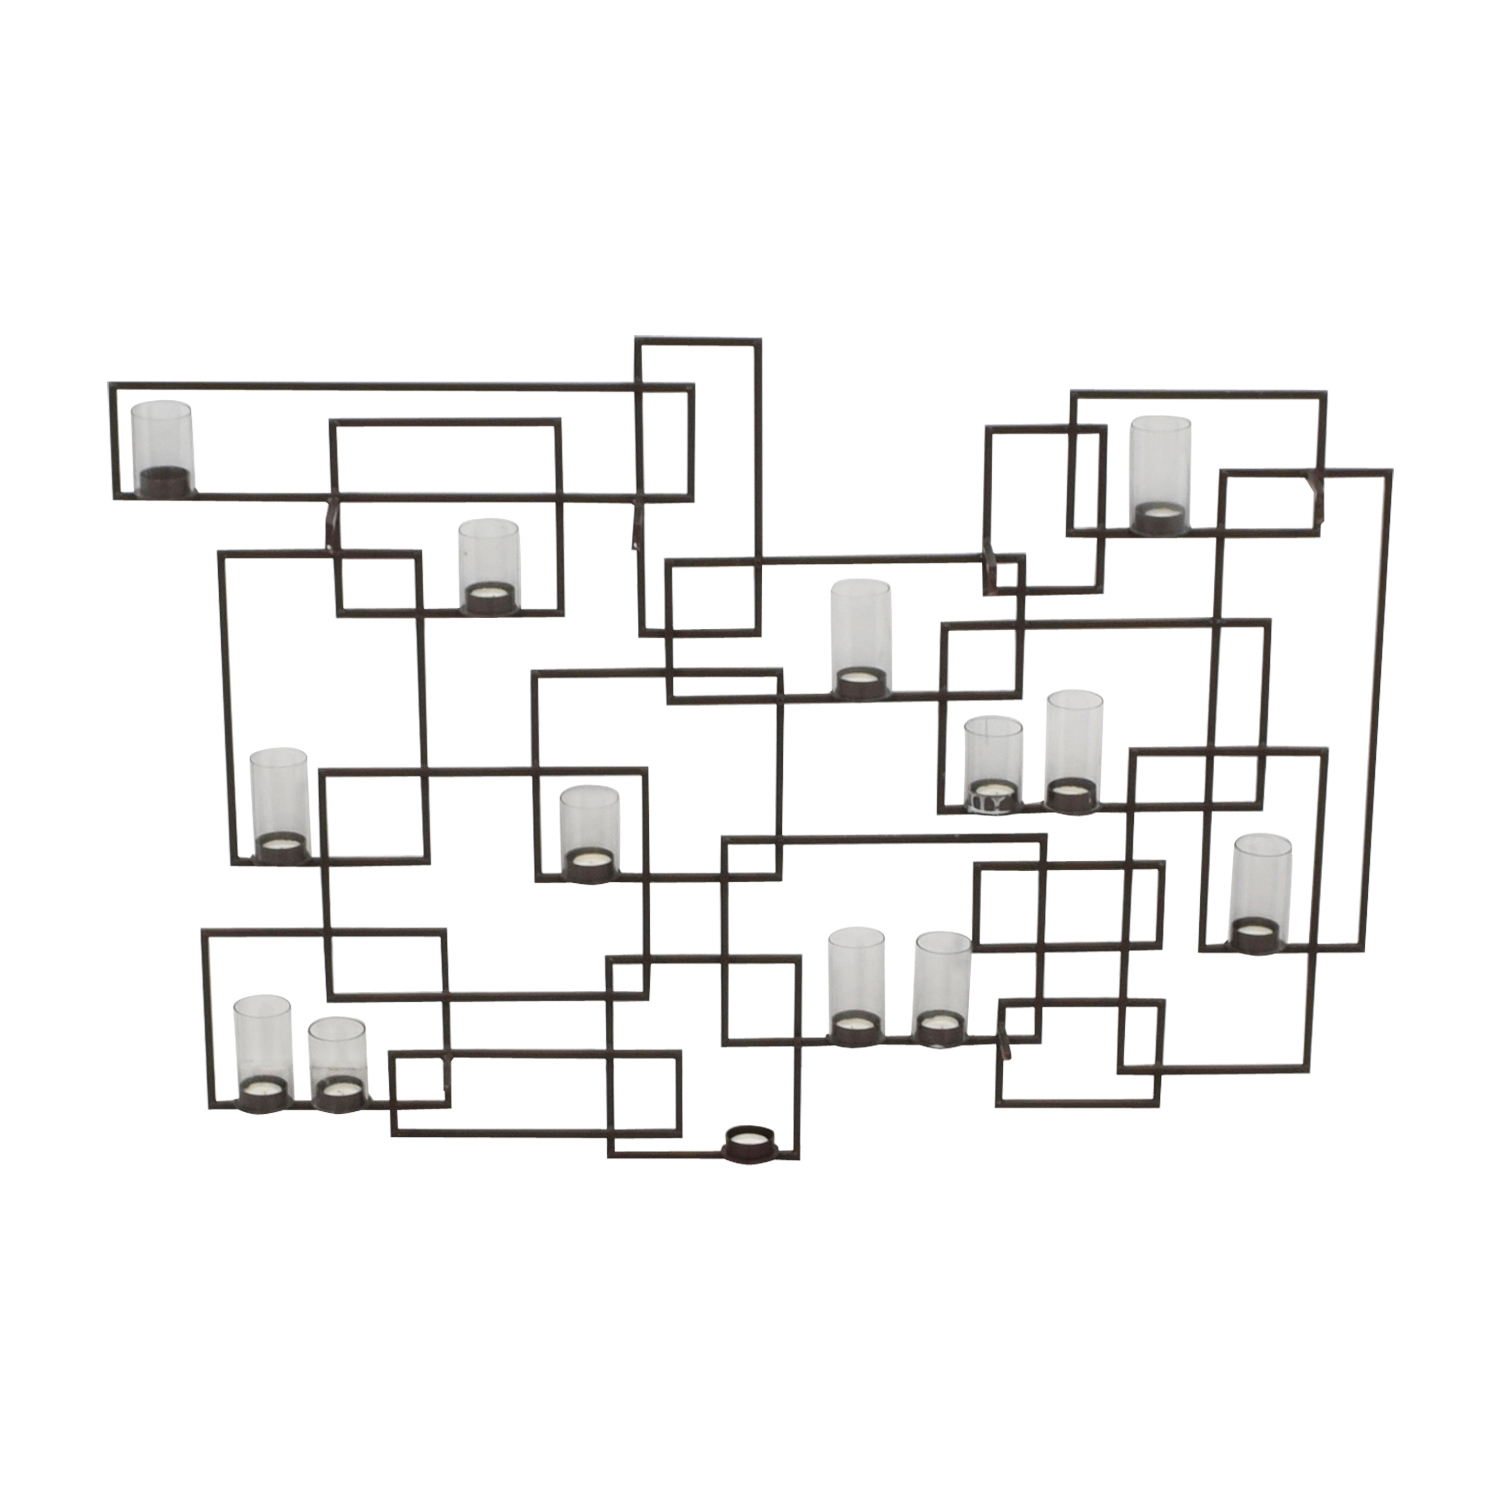 Crate & Barrel Circuit Metal Wall Candle Holder / Decor